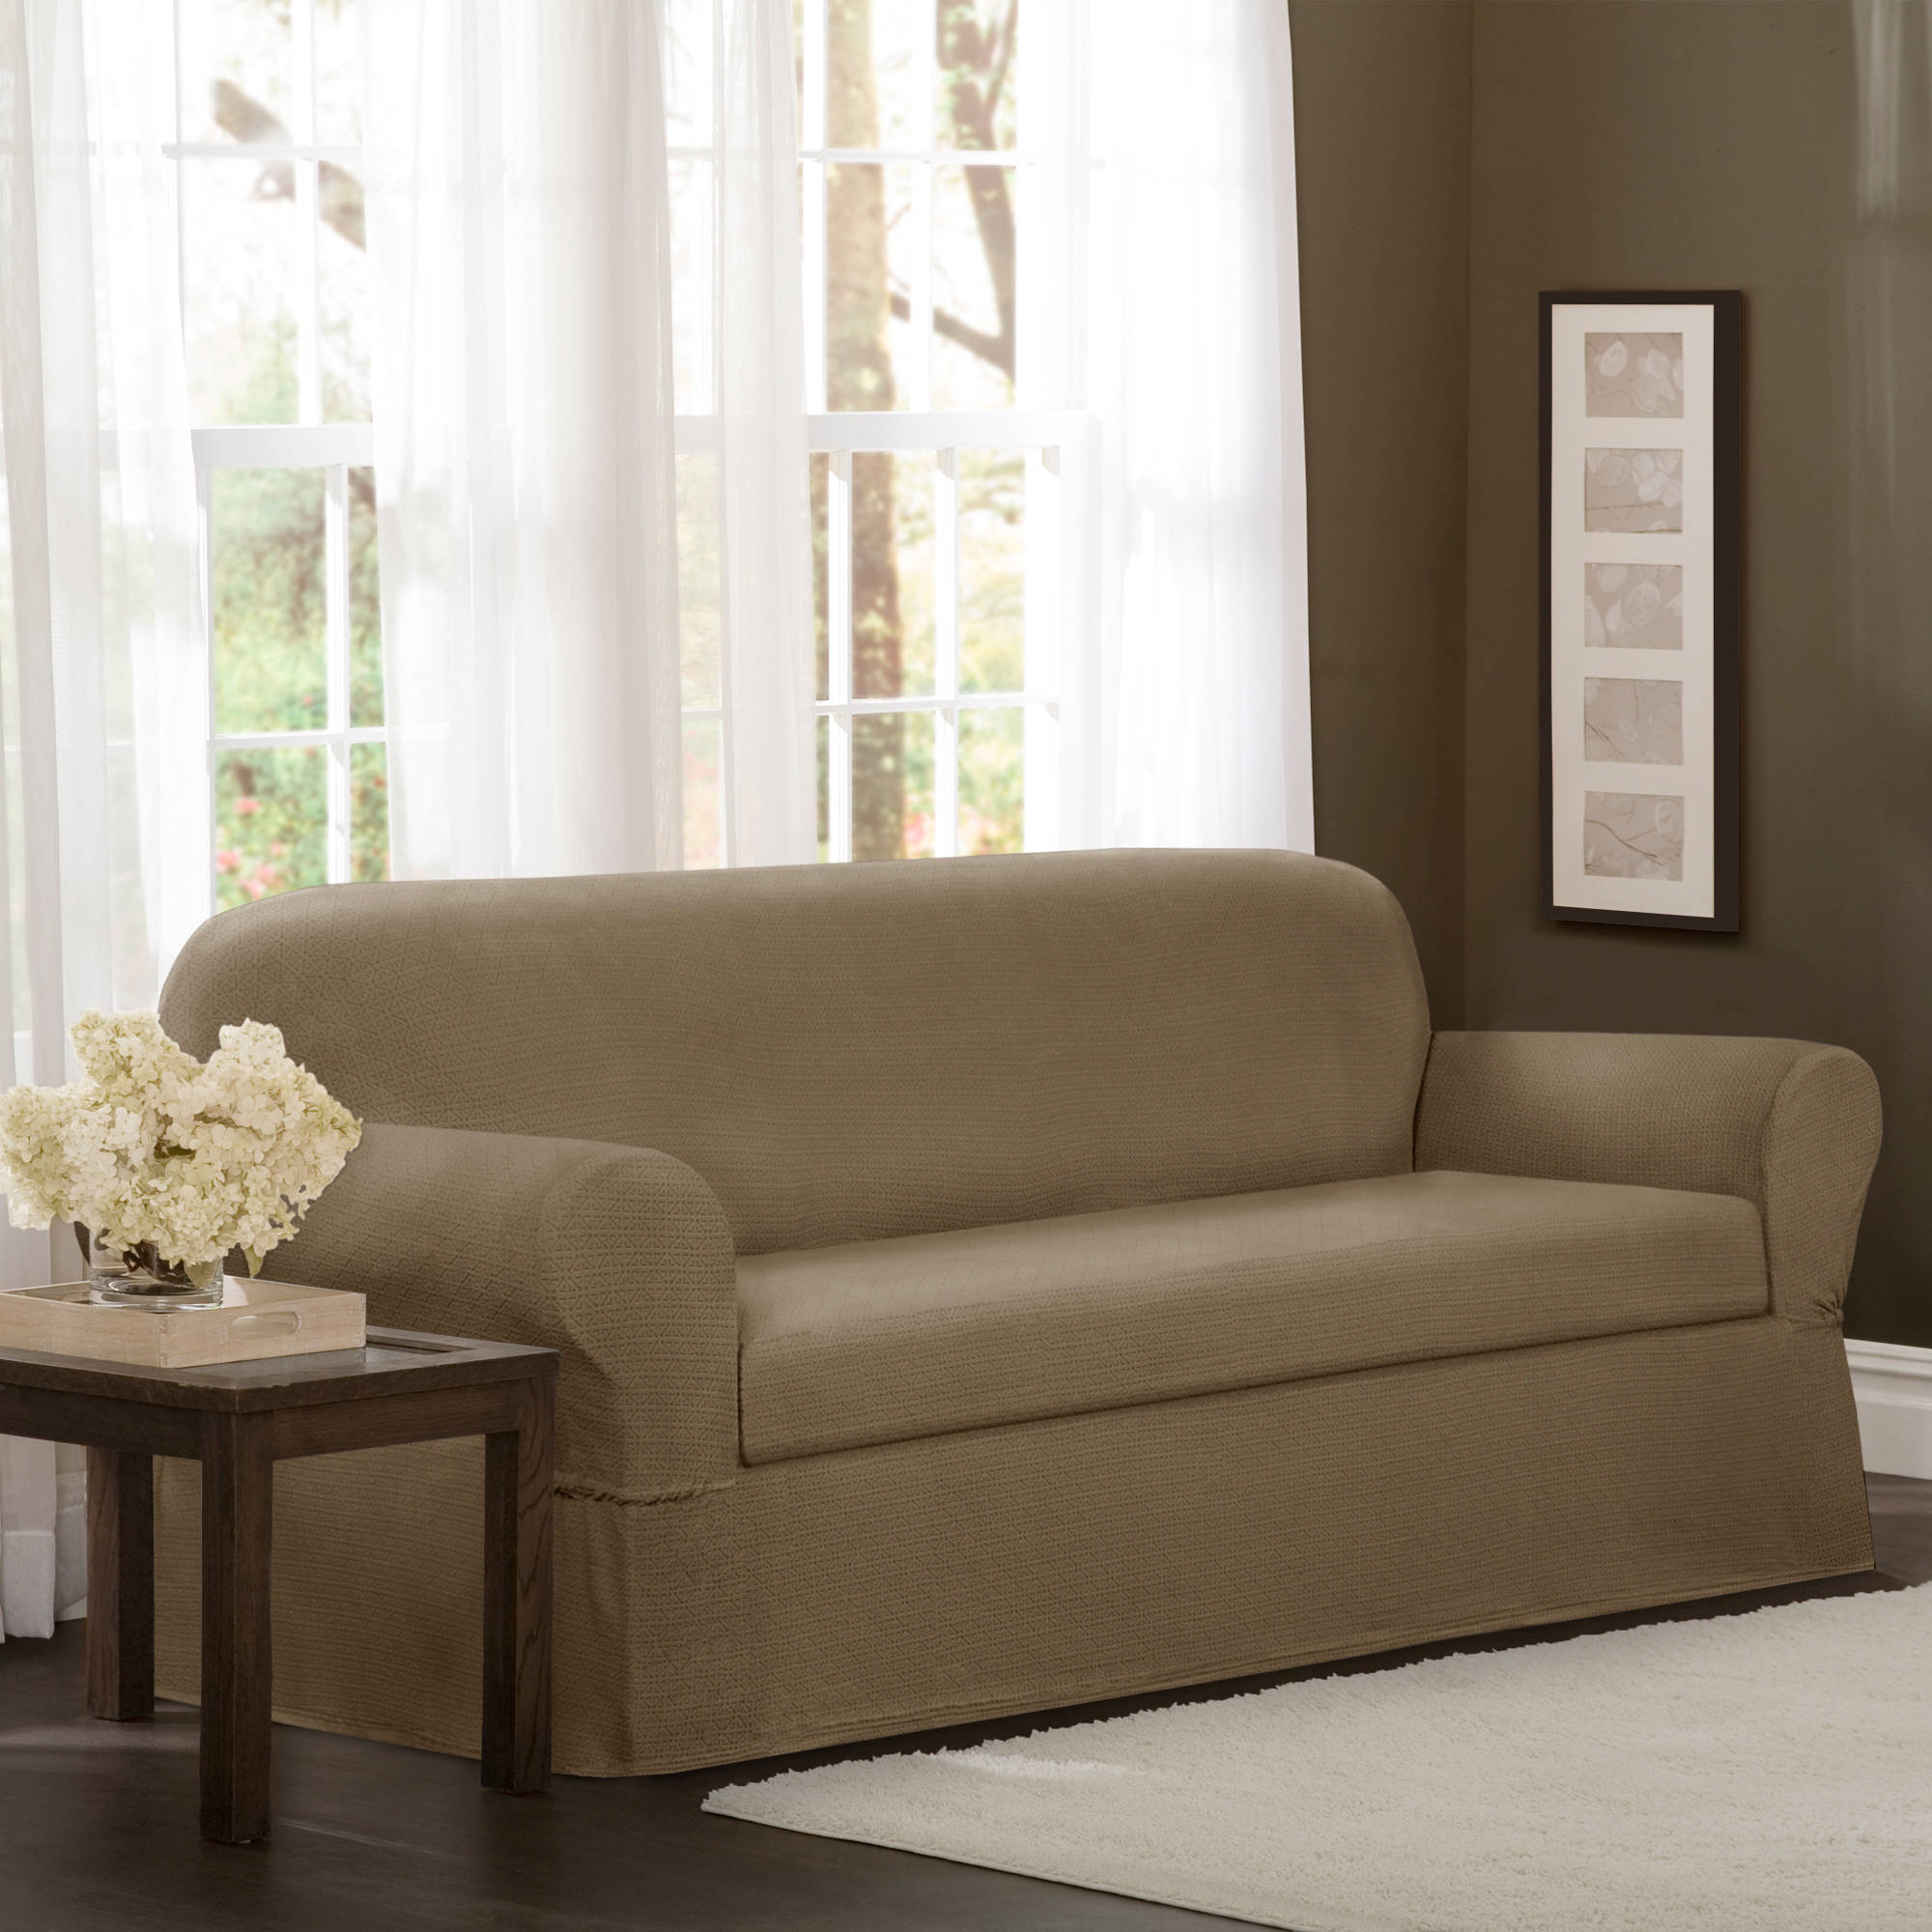 Maytex Torie Stretch Fabric 2-Piece Furniture Slipcover